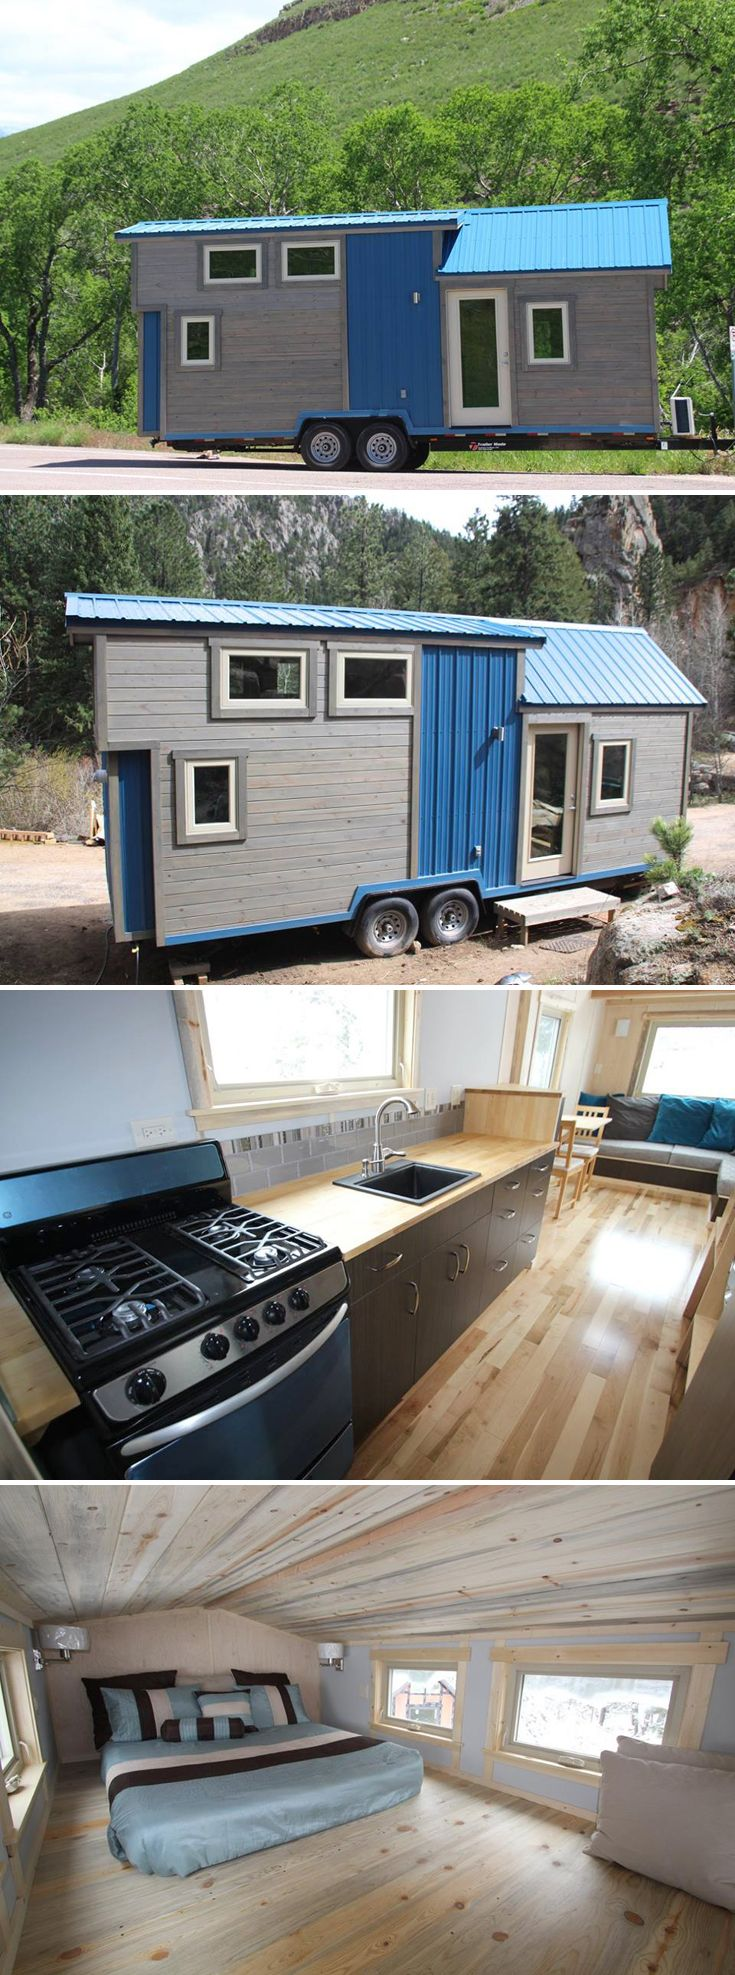 The 25.5' tiny house offers 260-square-feet of living space between the main floor and sleeping loft, and it features a beetle kill pine ceiling.